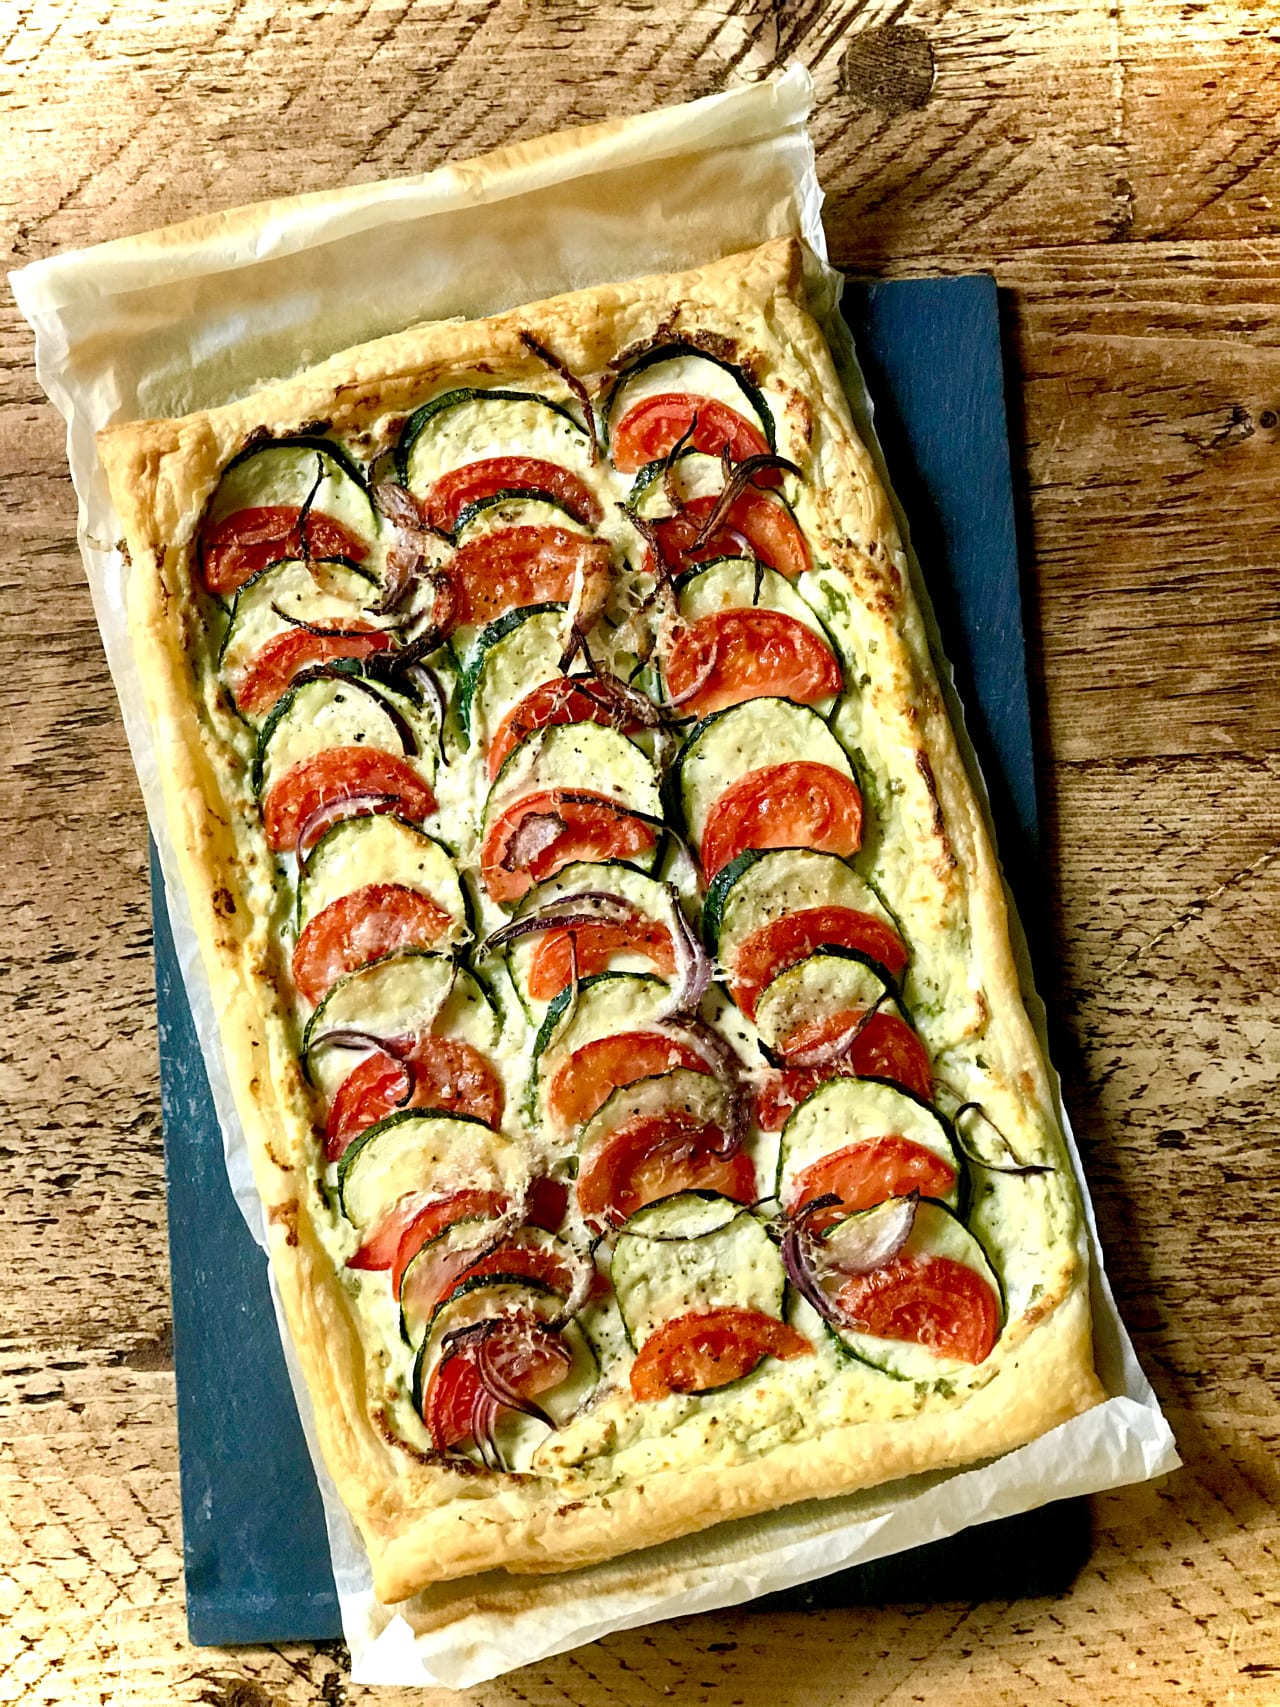 Tomato, Courgette and Ricotta Tart